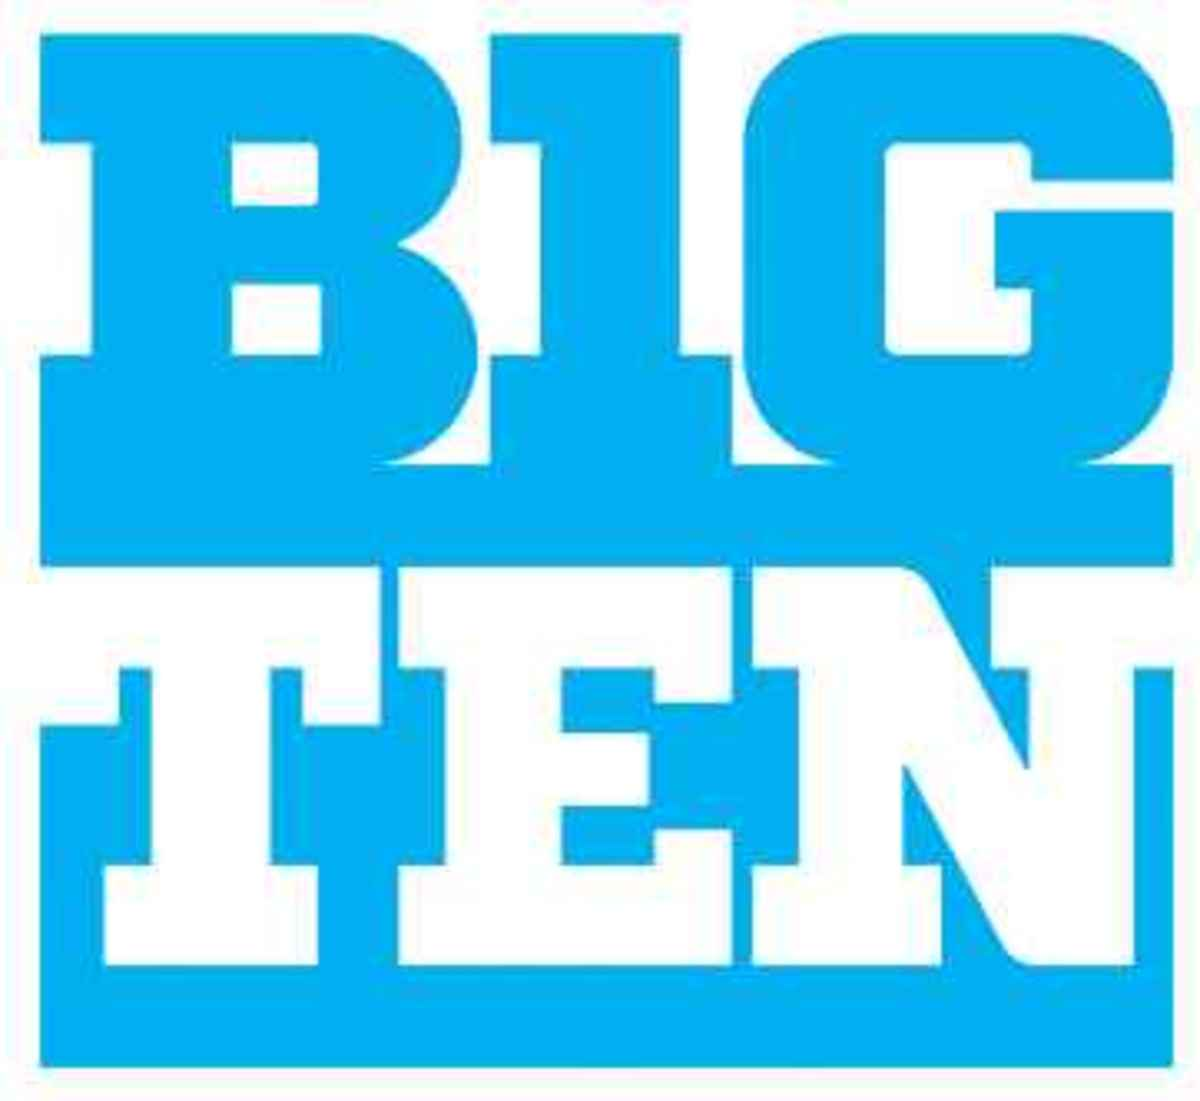 This is NOT good news for the CCHA, but great news for fans that the Big Ten wants to have it's own hockey conference.